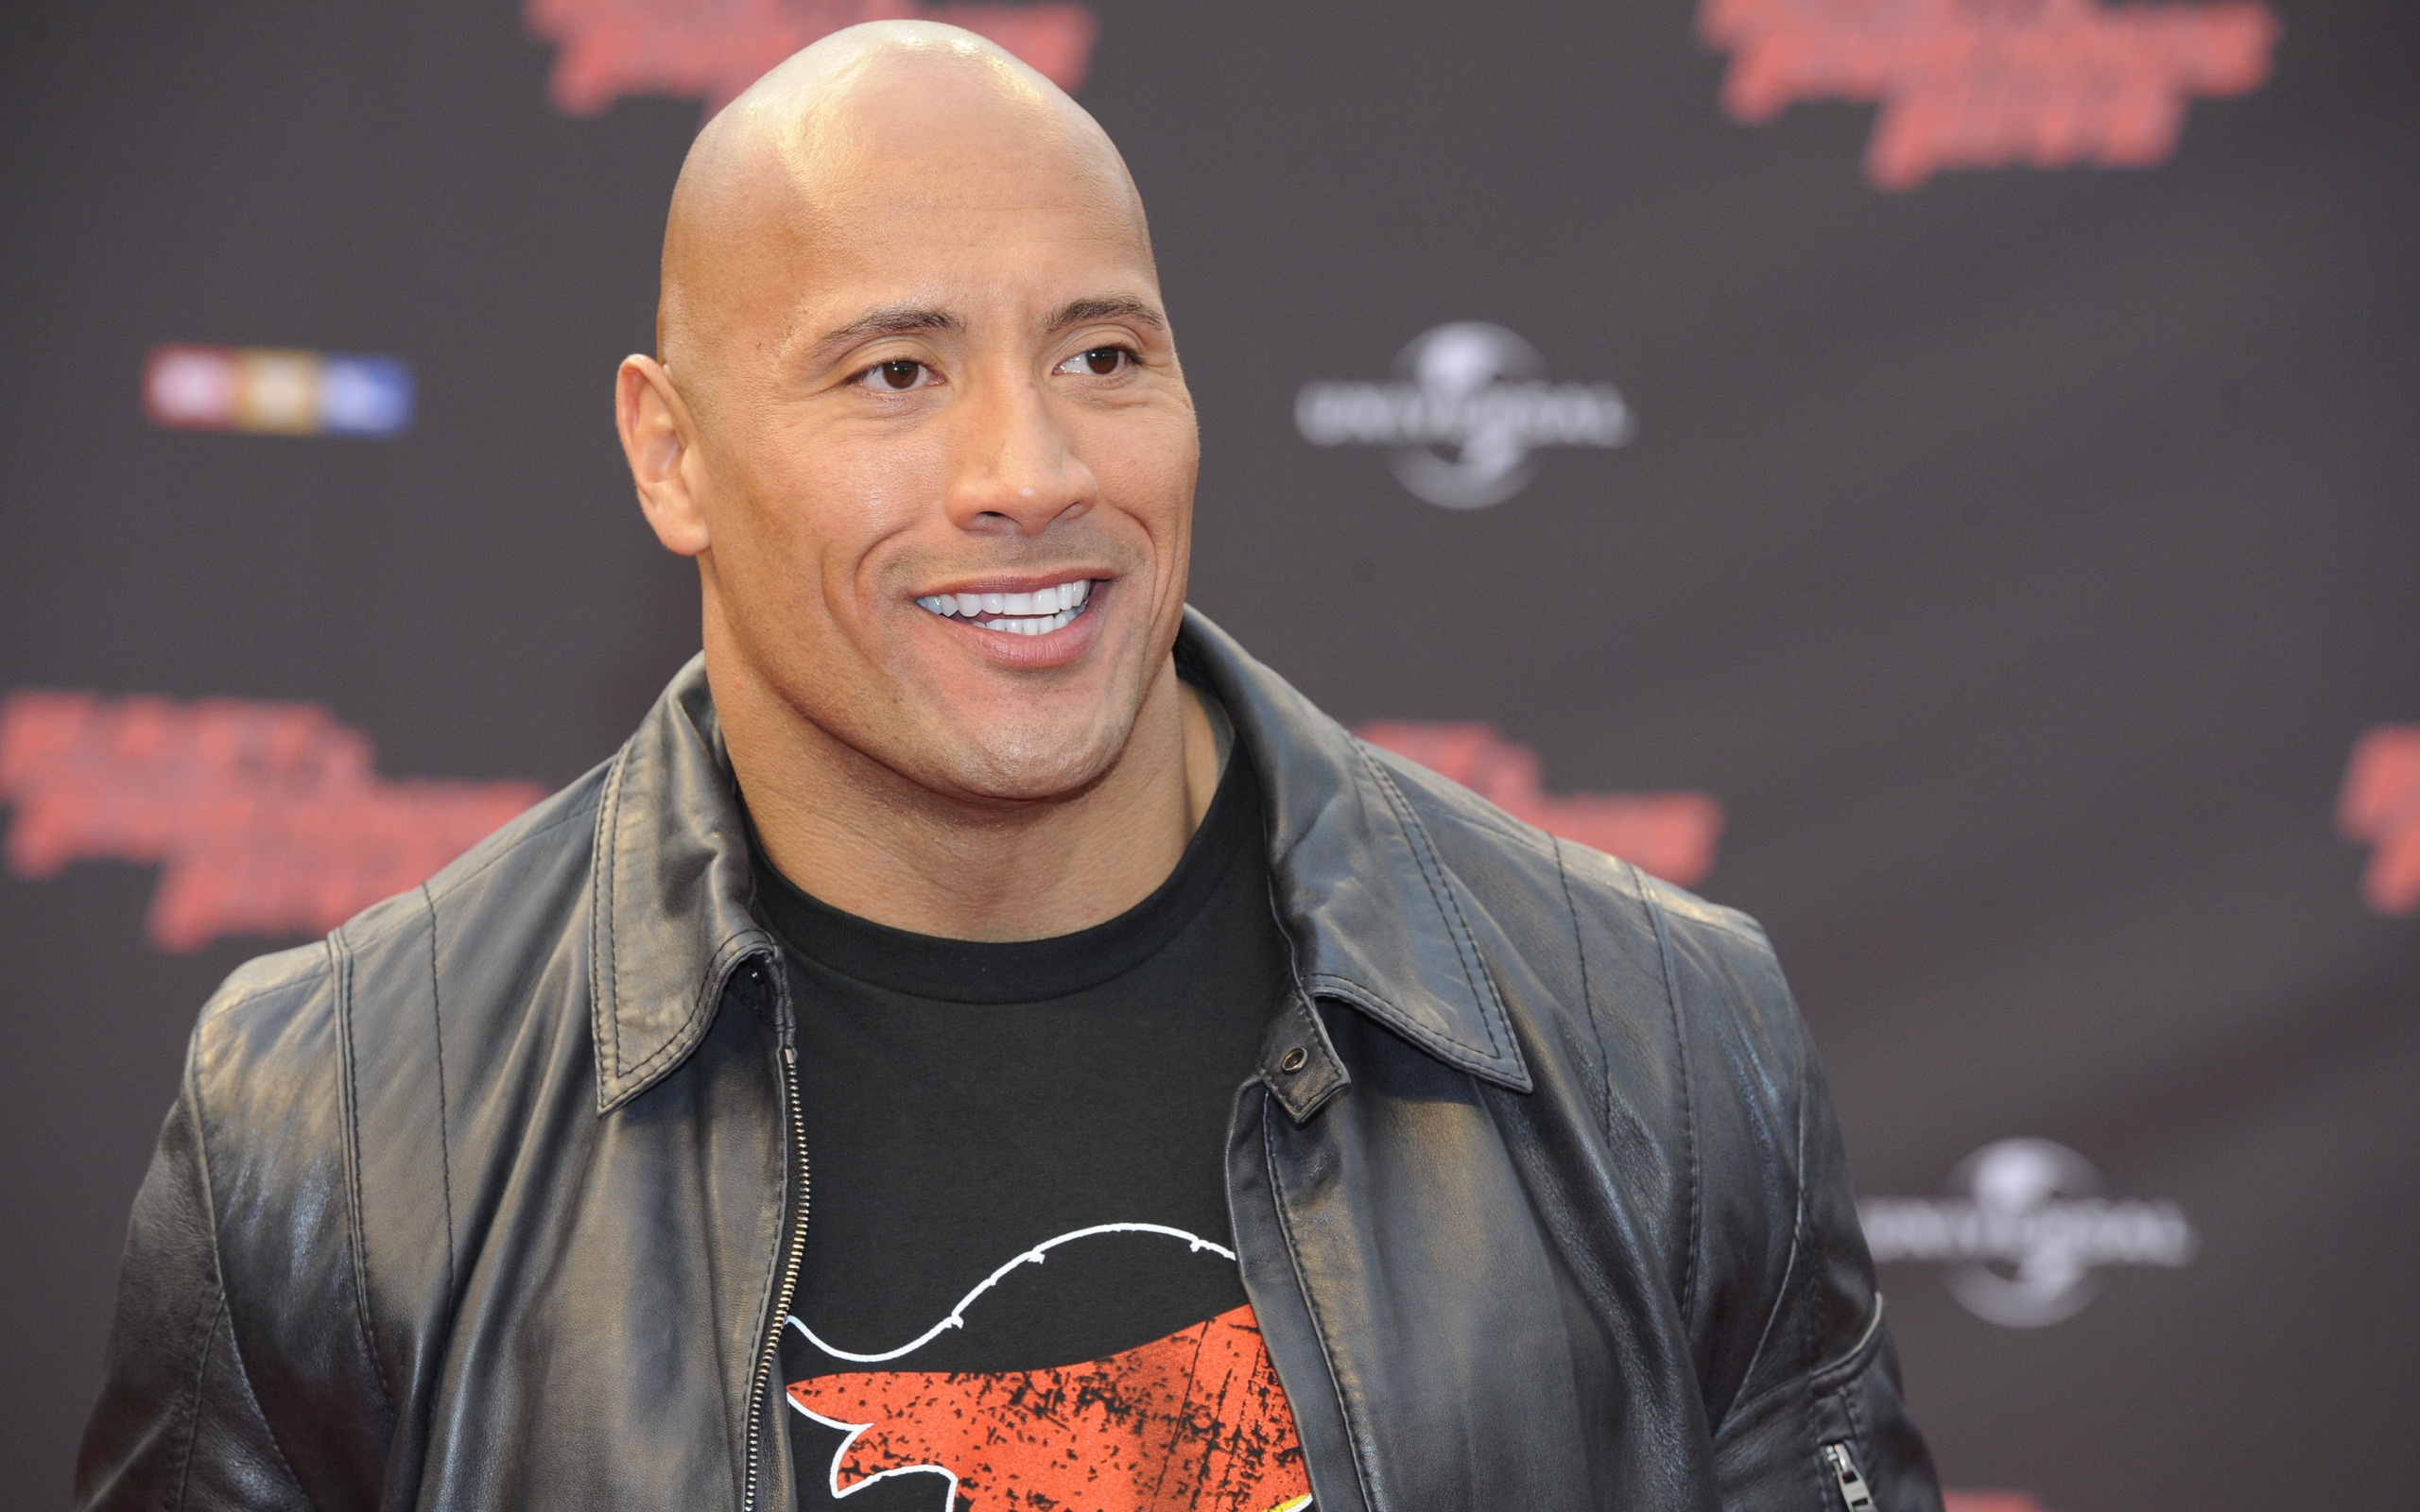 A Big Trouble in Little China remake with Dwayne Johnson!